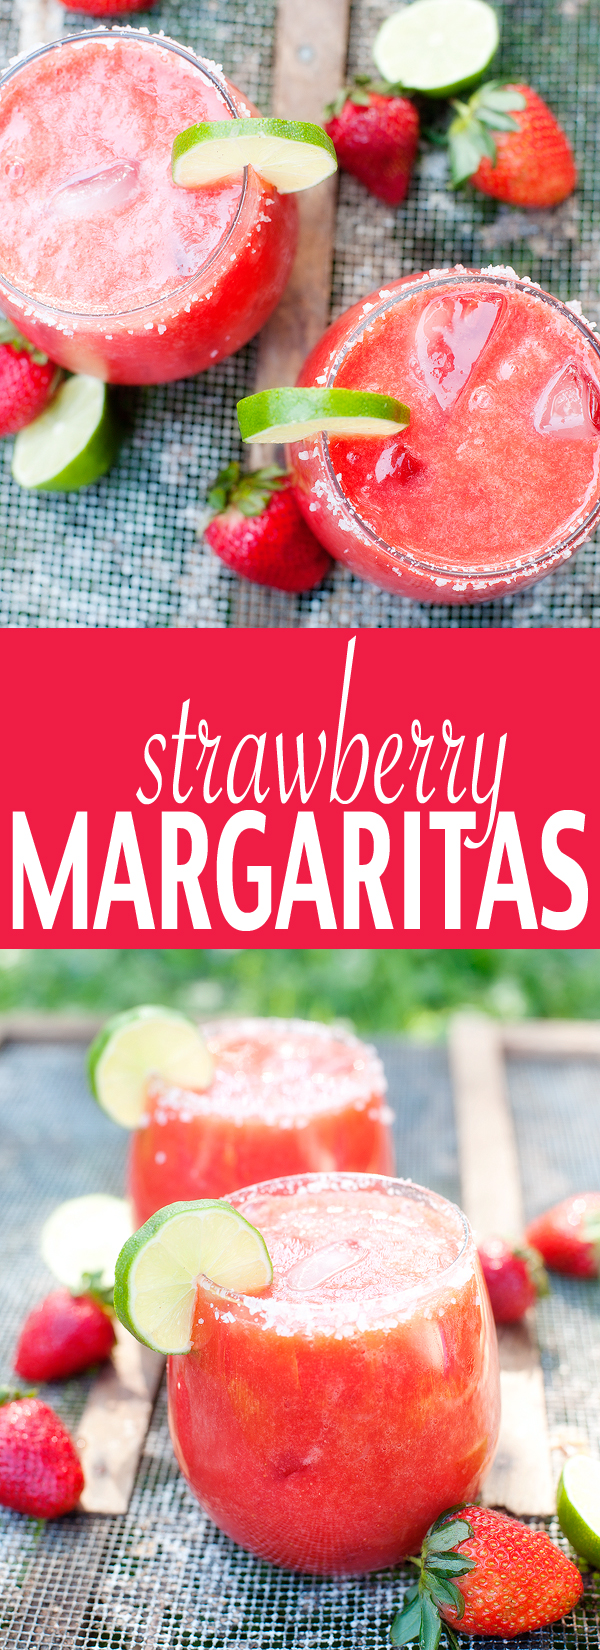 strawberry_margaritas_pin